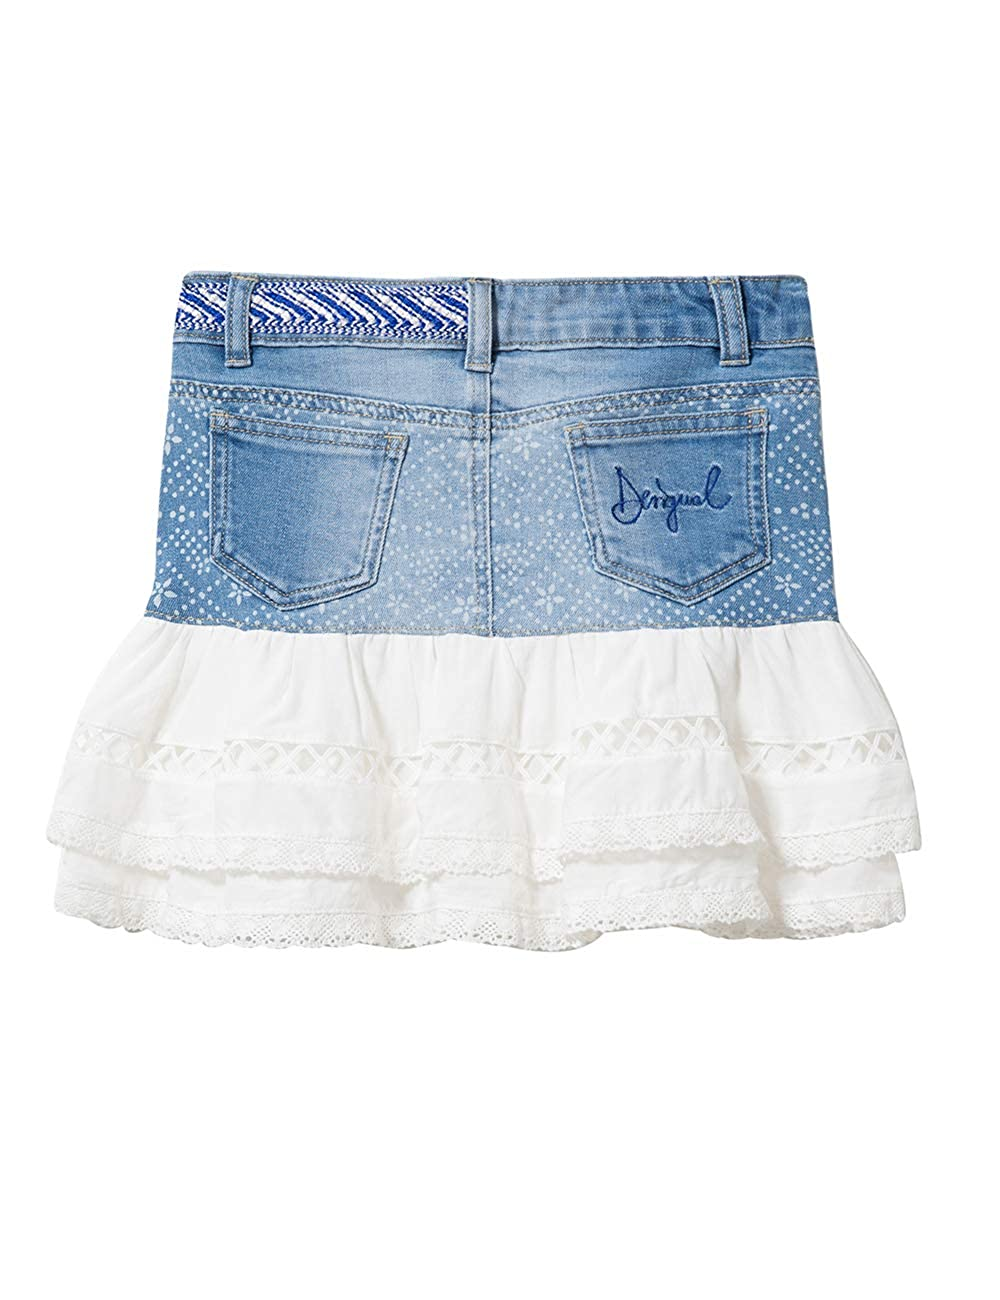 FAL/_calella Desigual Girl Denim Skirt Short Gonna Bambina